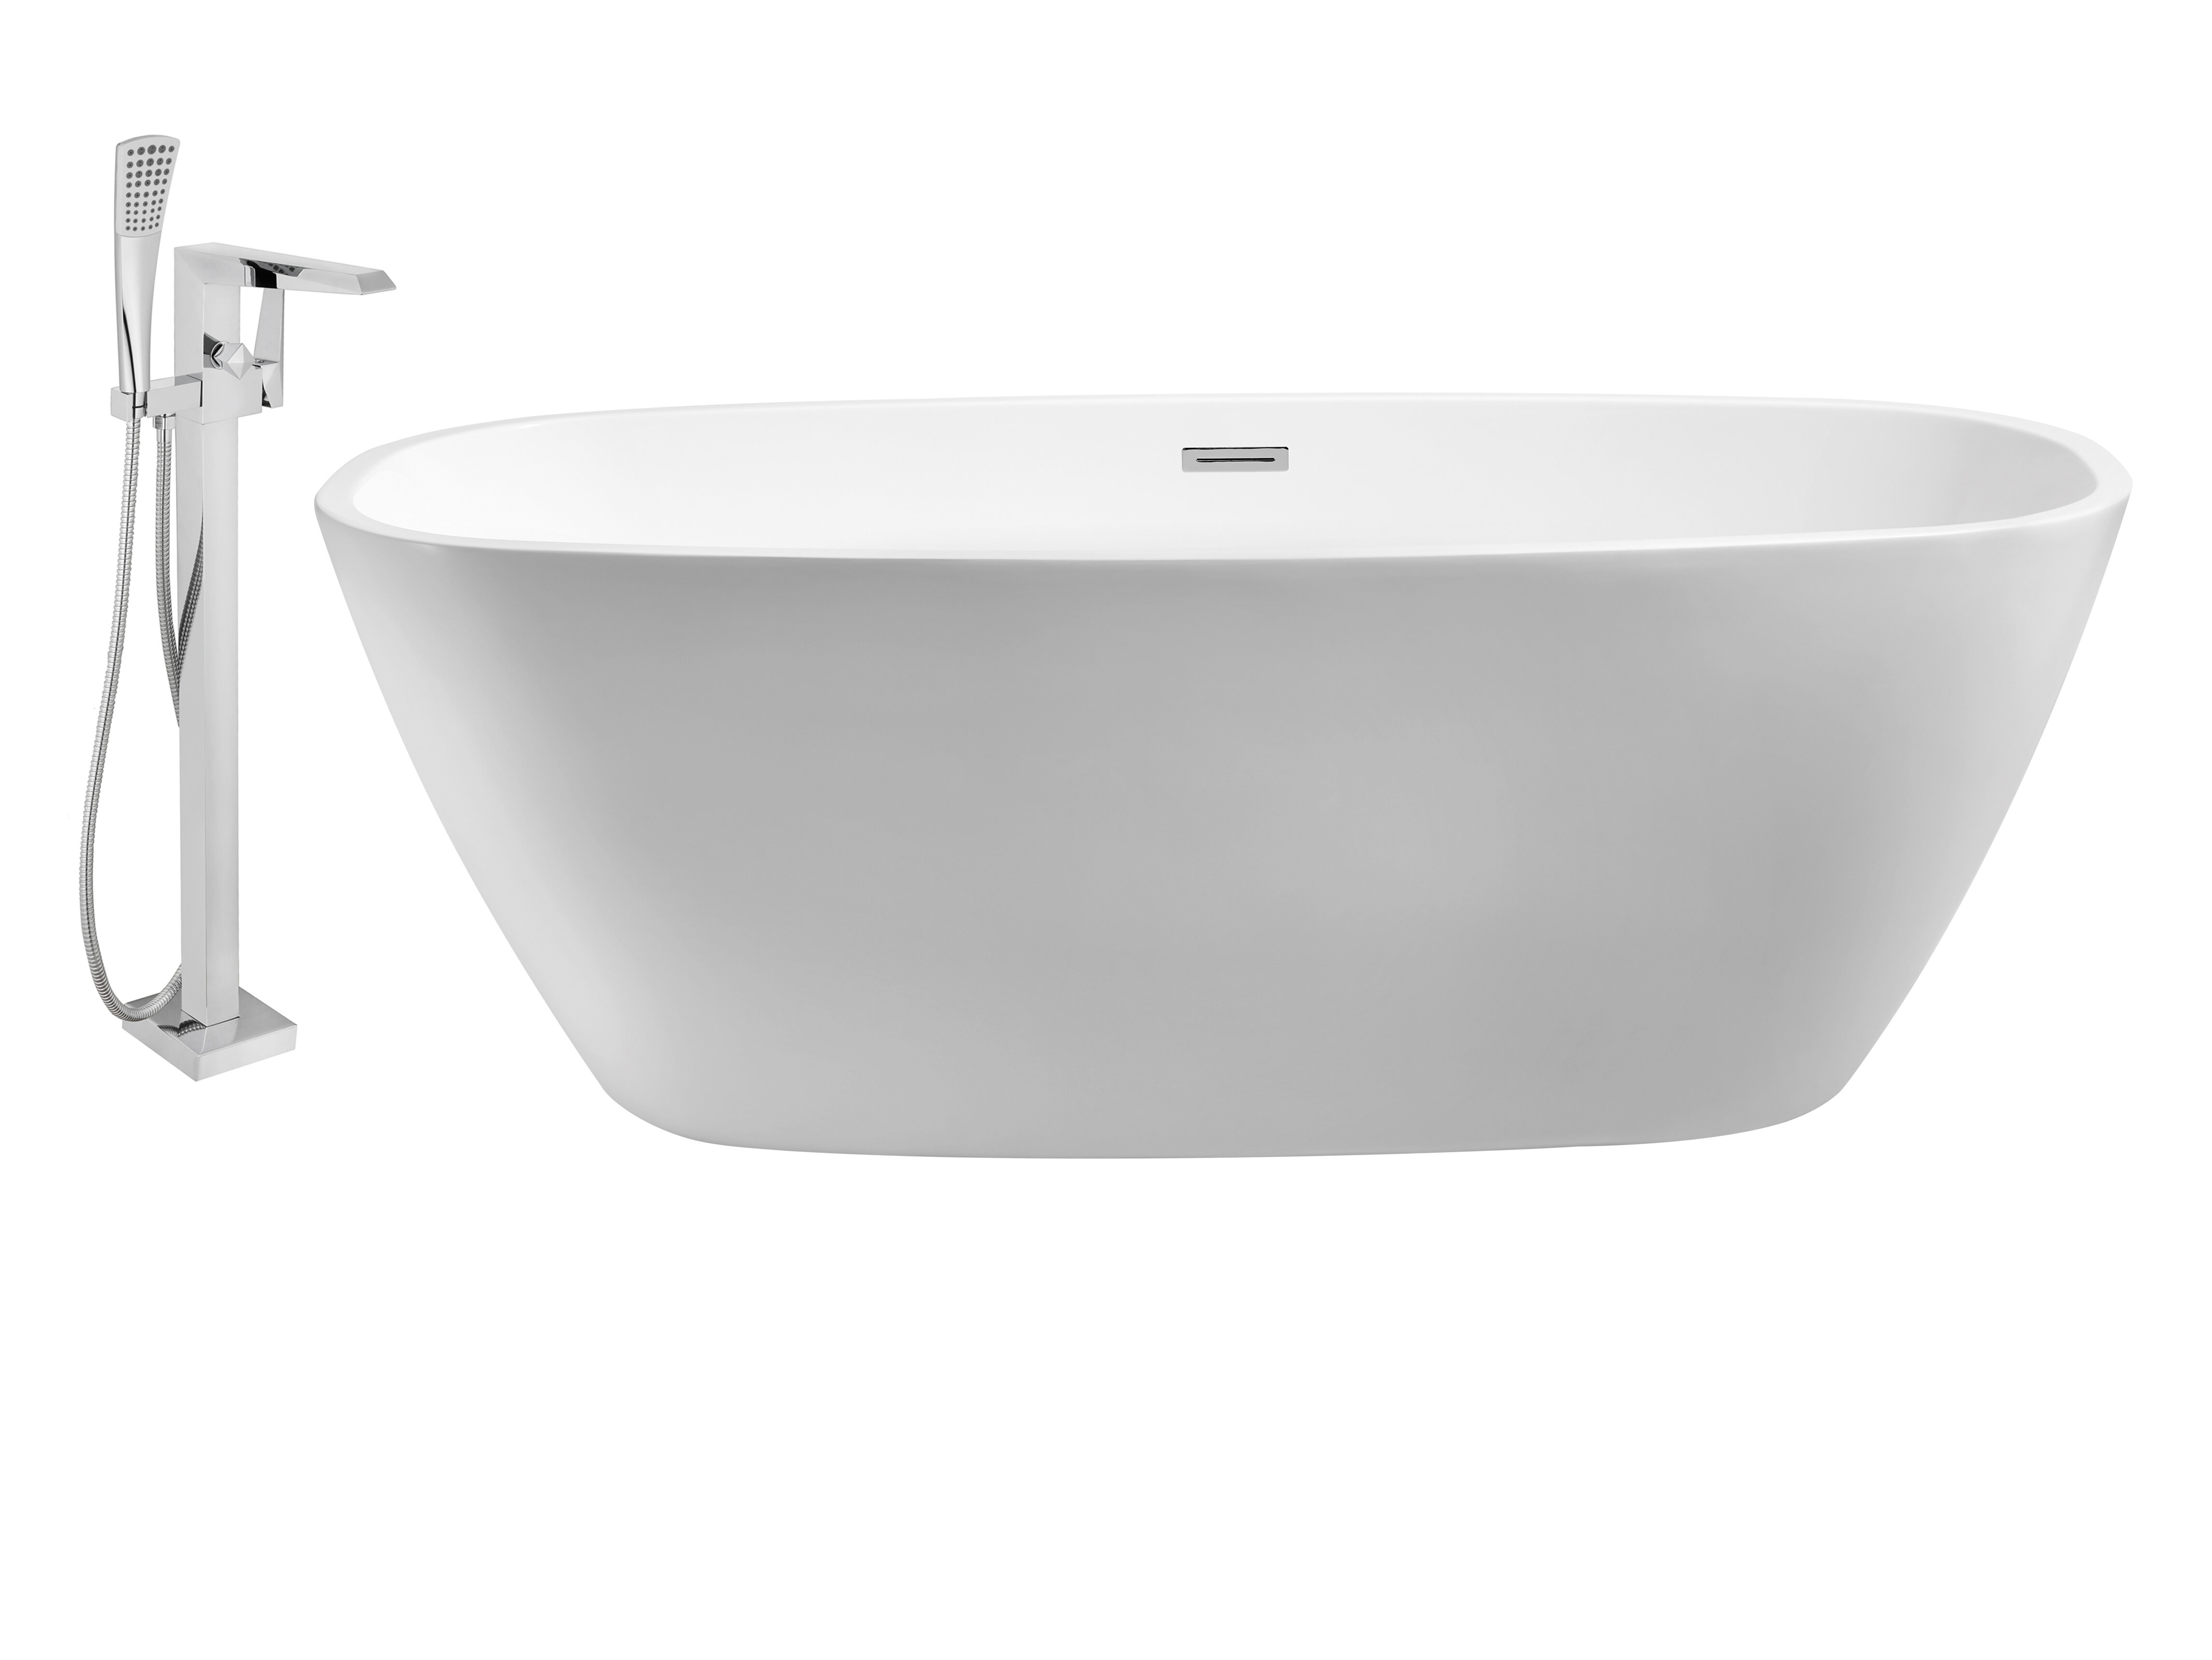 frontview freestanding chrome with white acrylic lexora inch bathtub product drain vinter